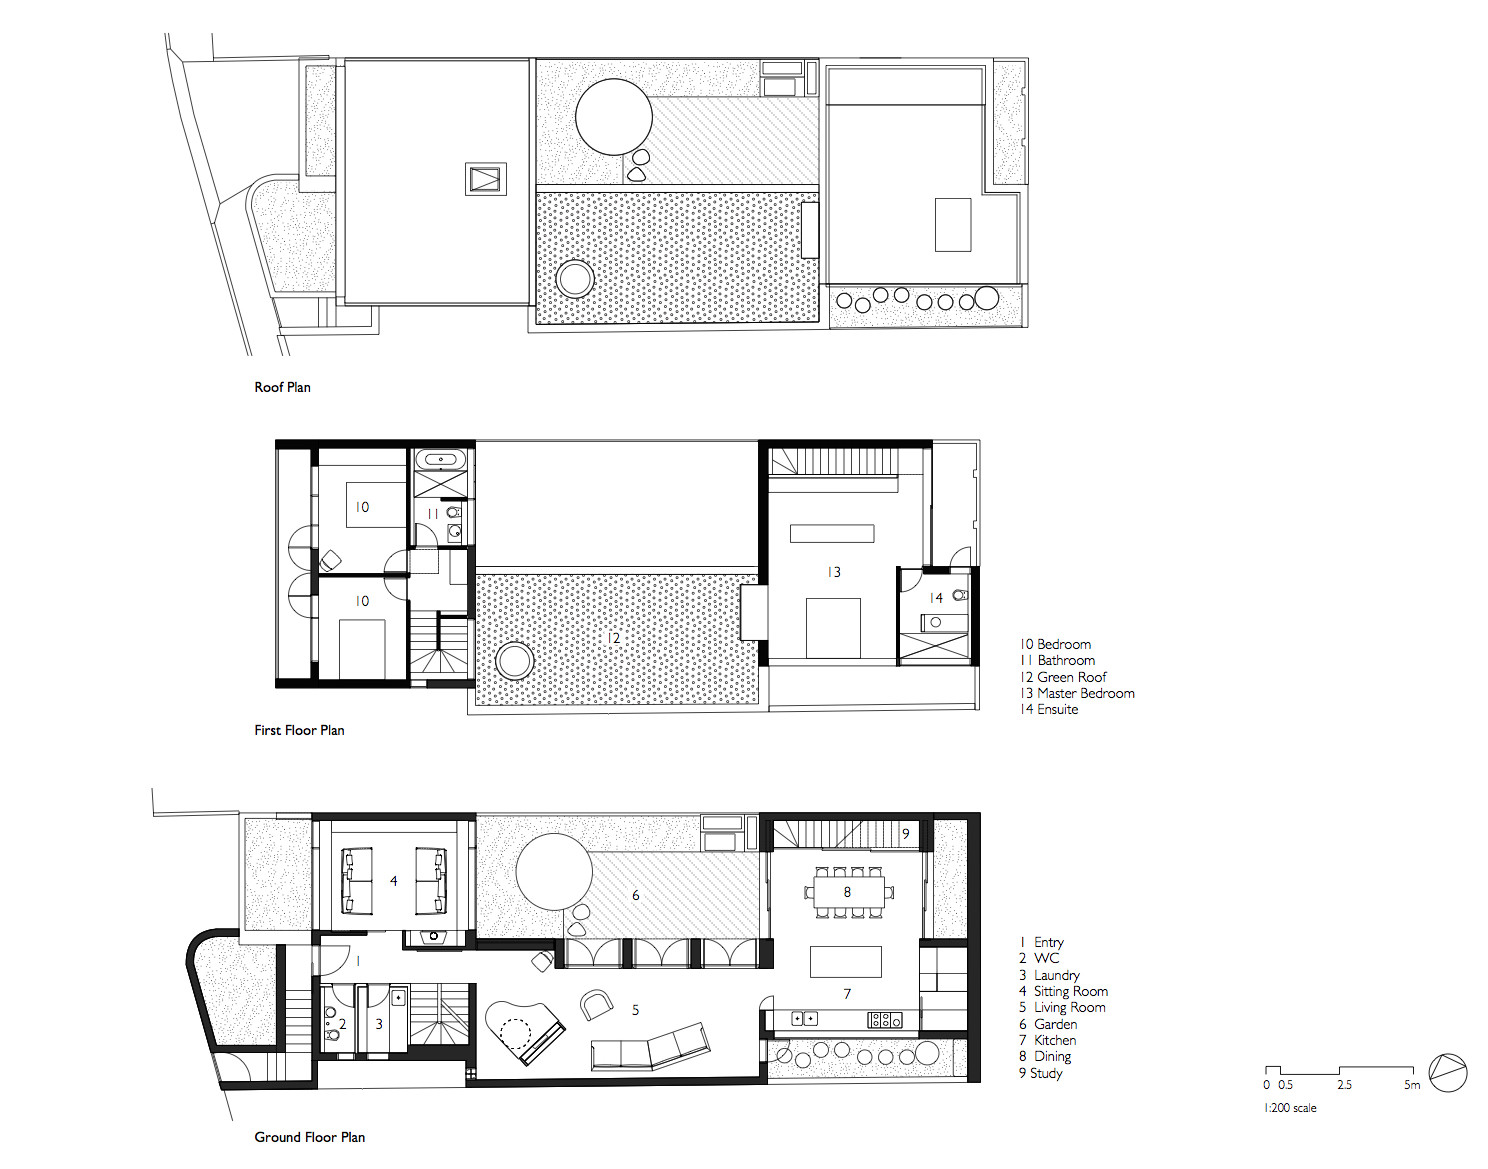 Courtyard House Aileen Sage Architects on 2 bedroom log cabin plans